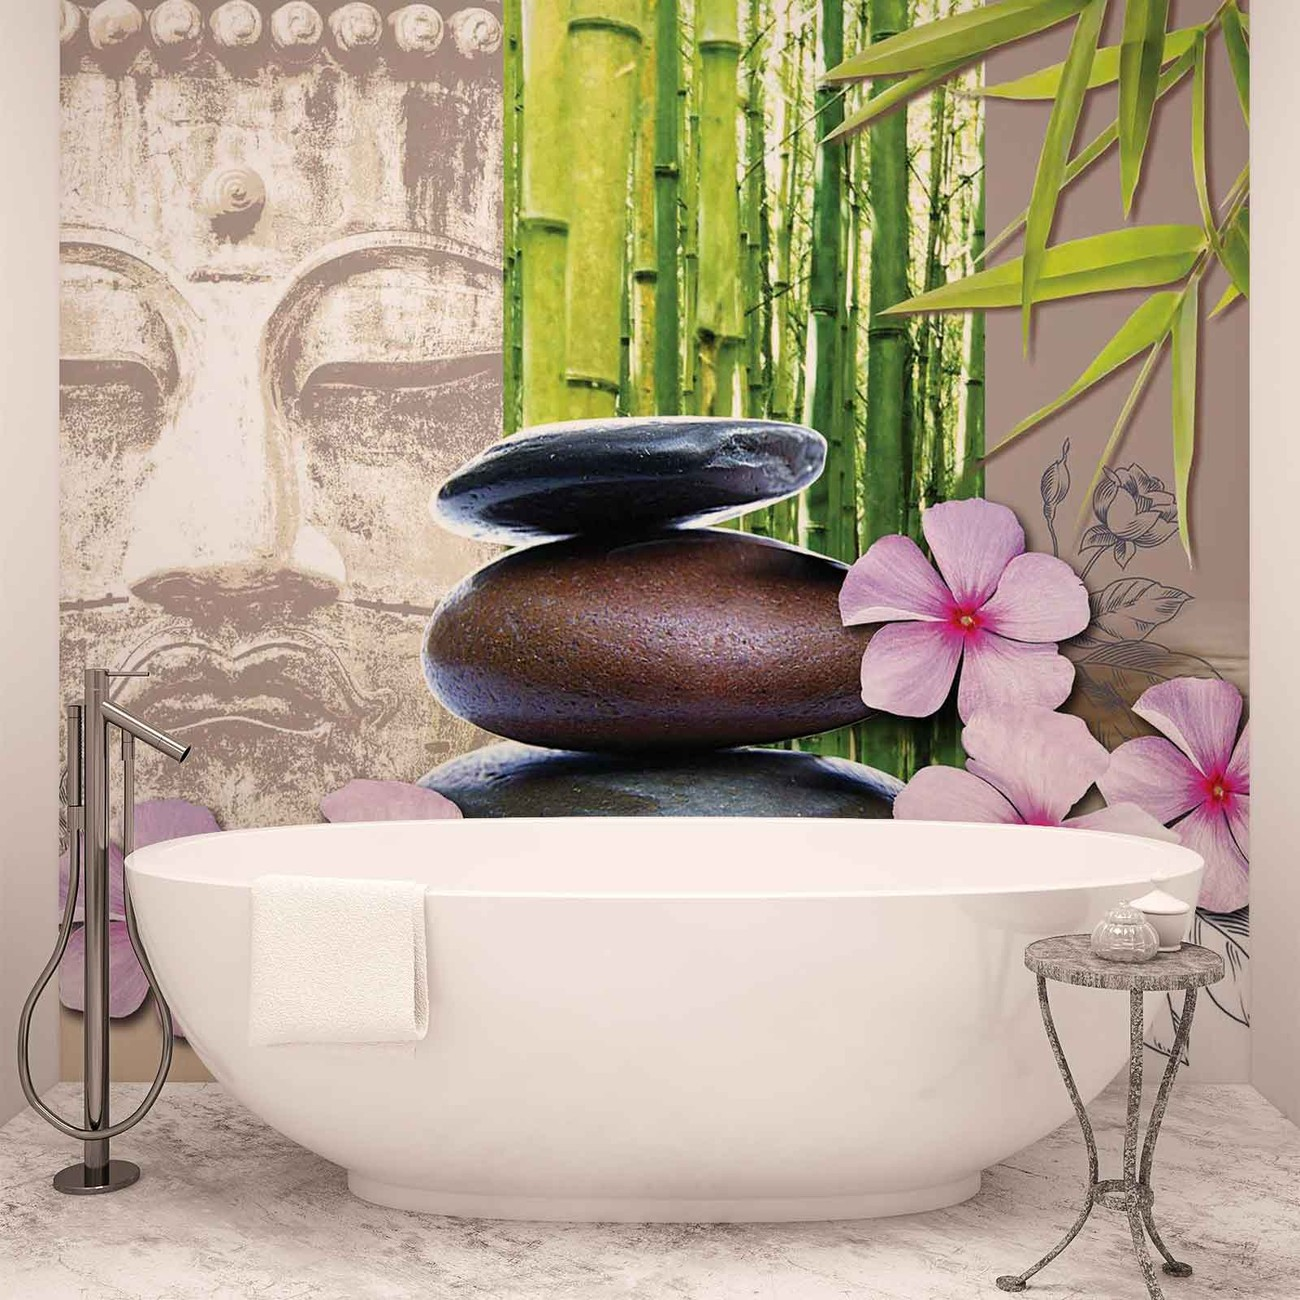 Flowers with zen stones wall paper mural buy at europosters for Poster mural zen deco